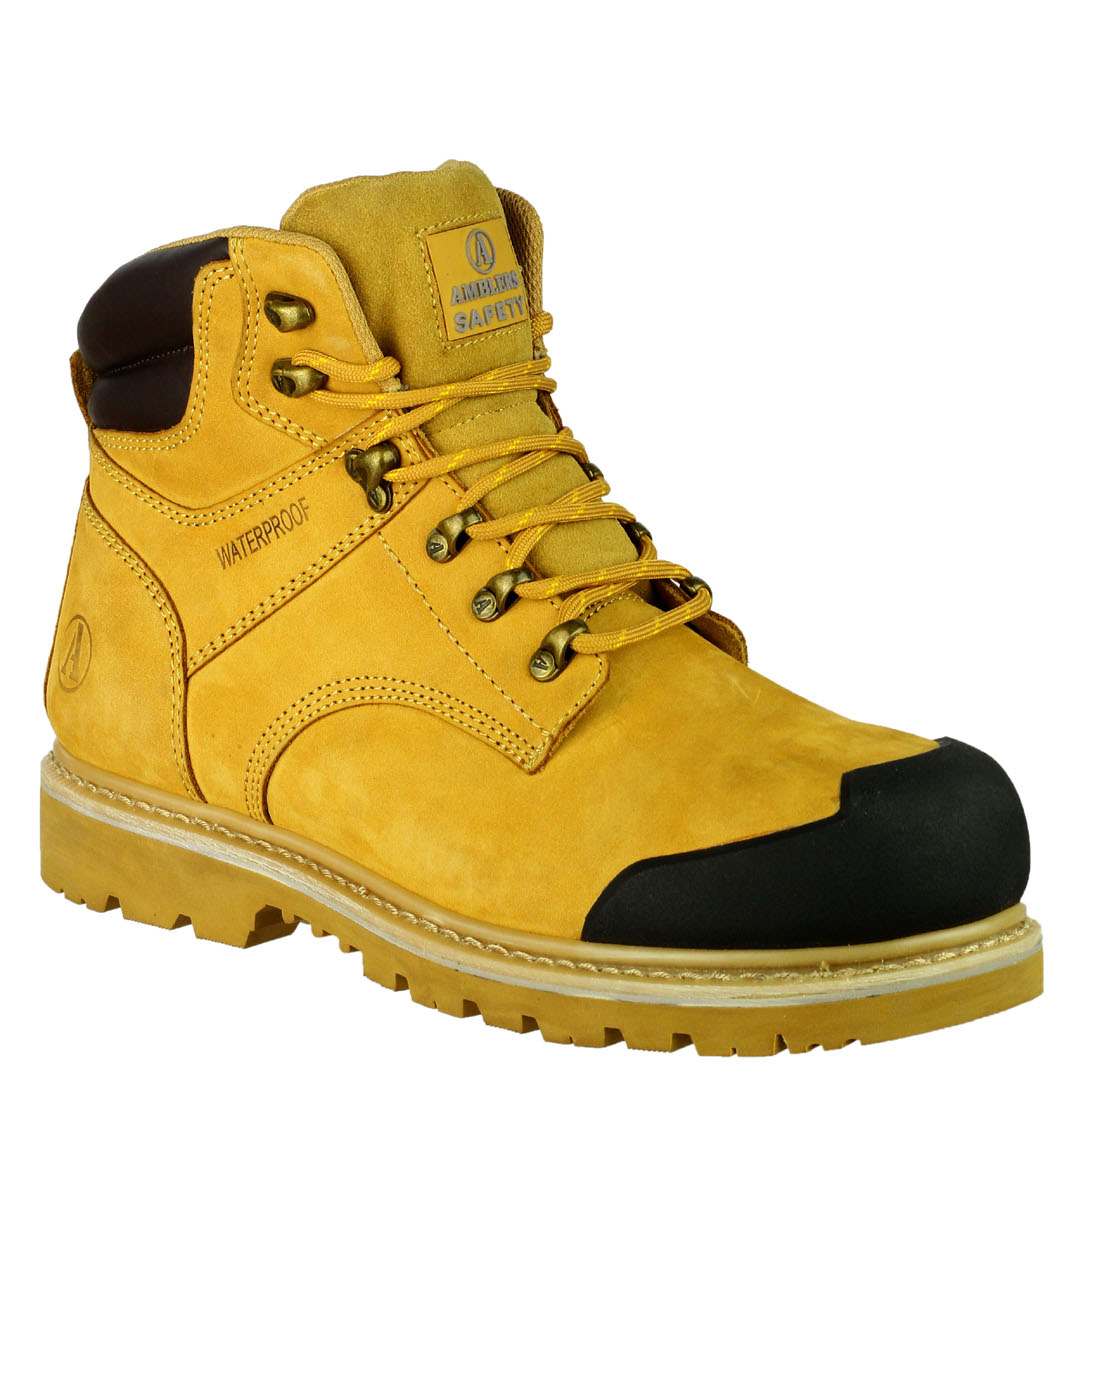 Charnwood Safety Footwear and Workwear Ltd Image